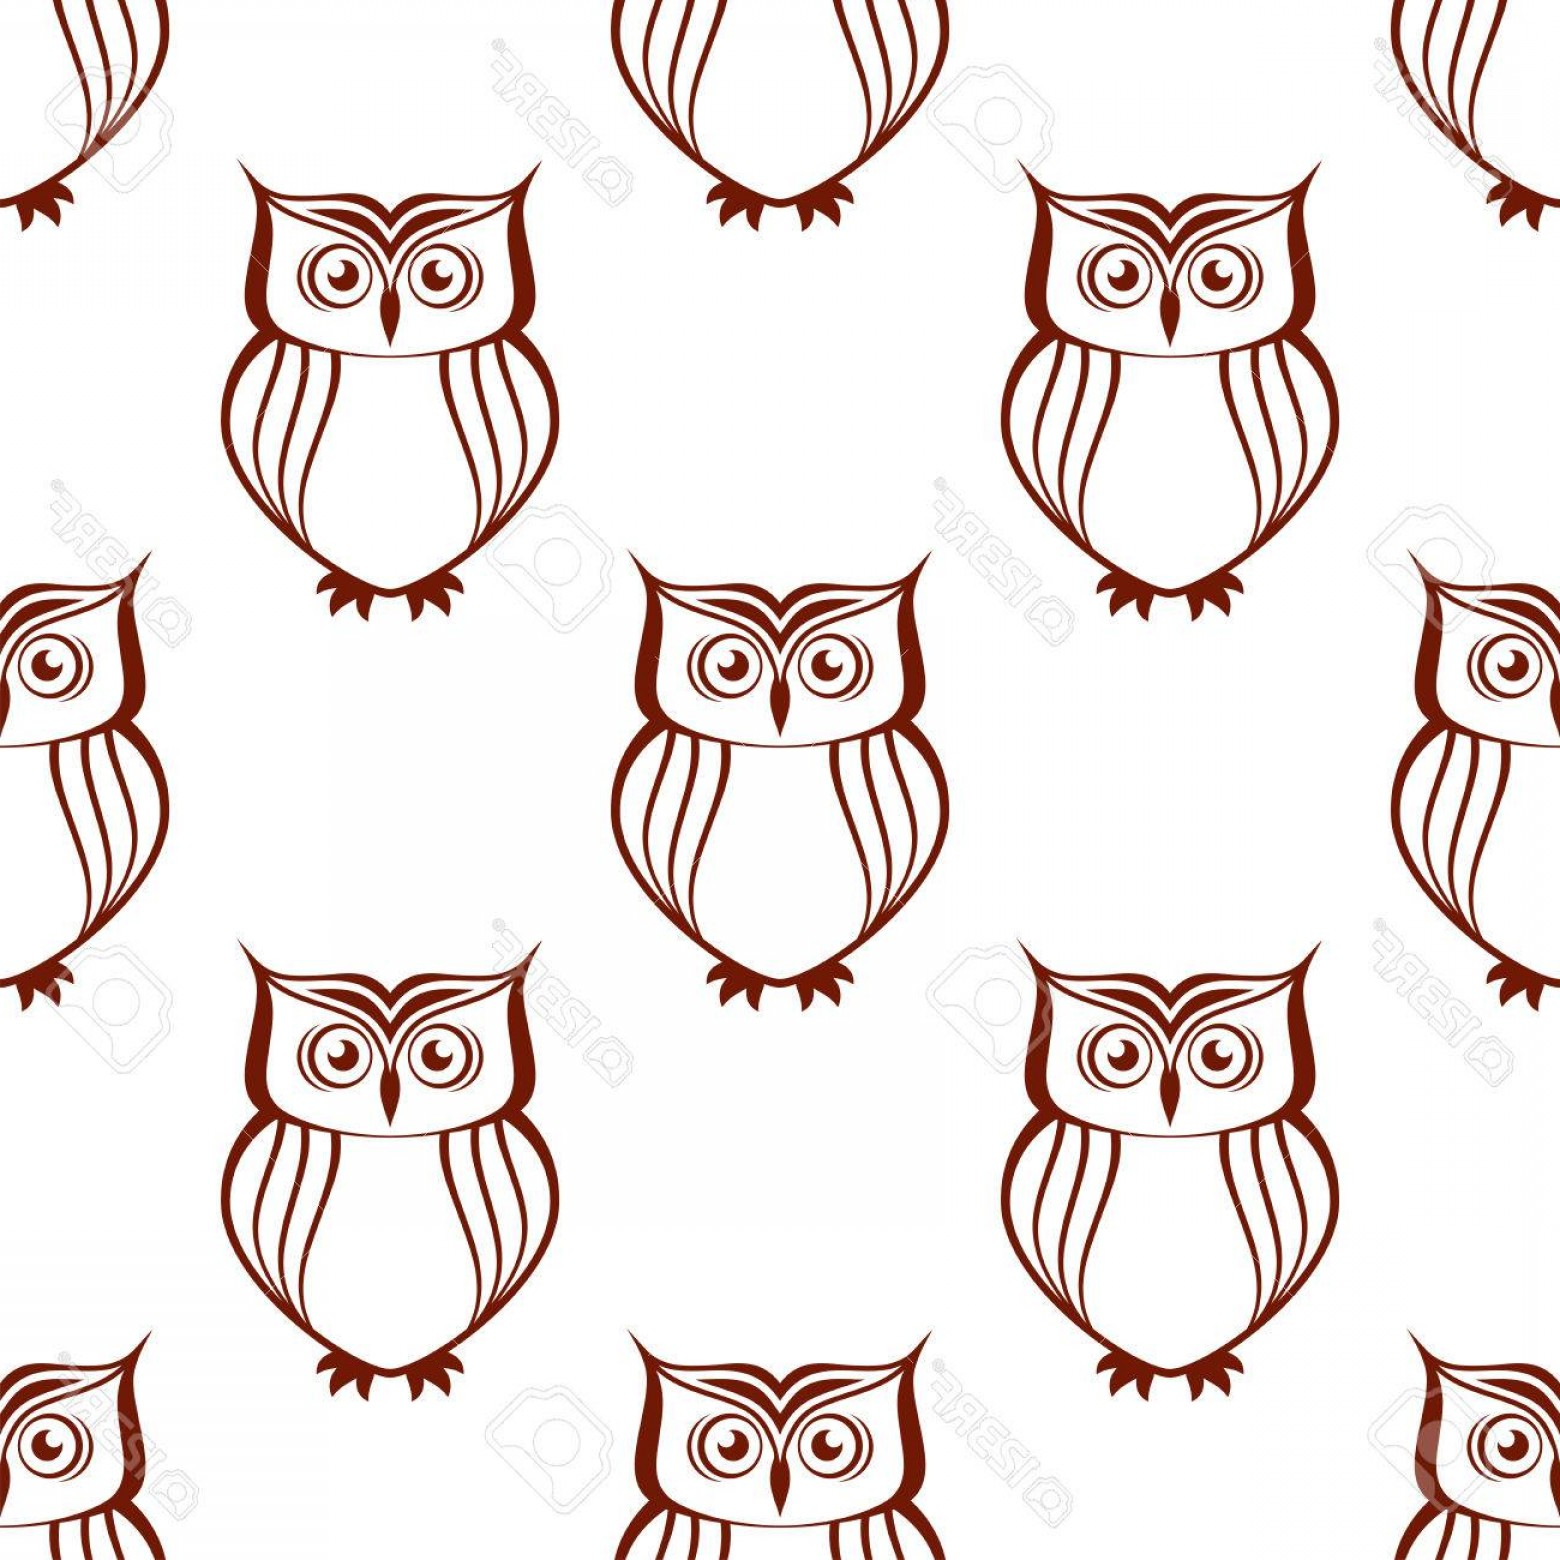 Owl Silhouette Vector Art: Photostock Vector Brown And White Owl Silhouette Seamless Pattern With Watchful Birds